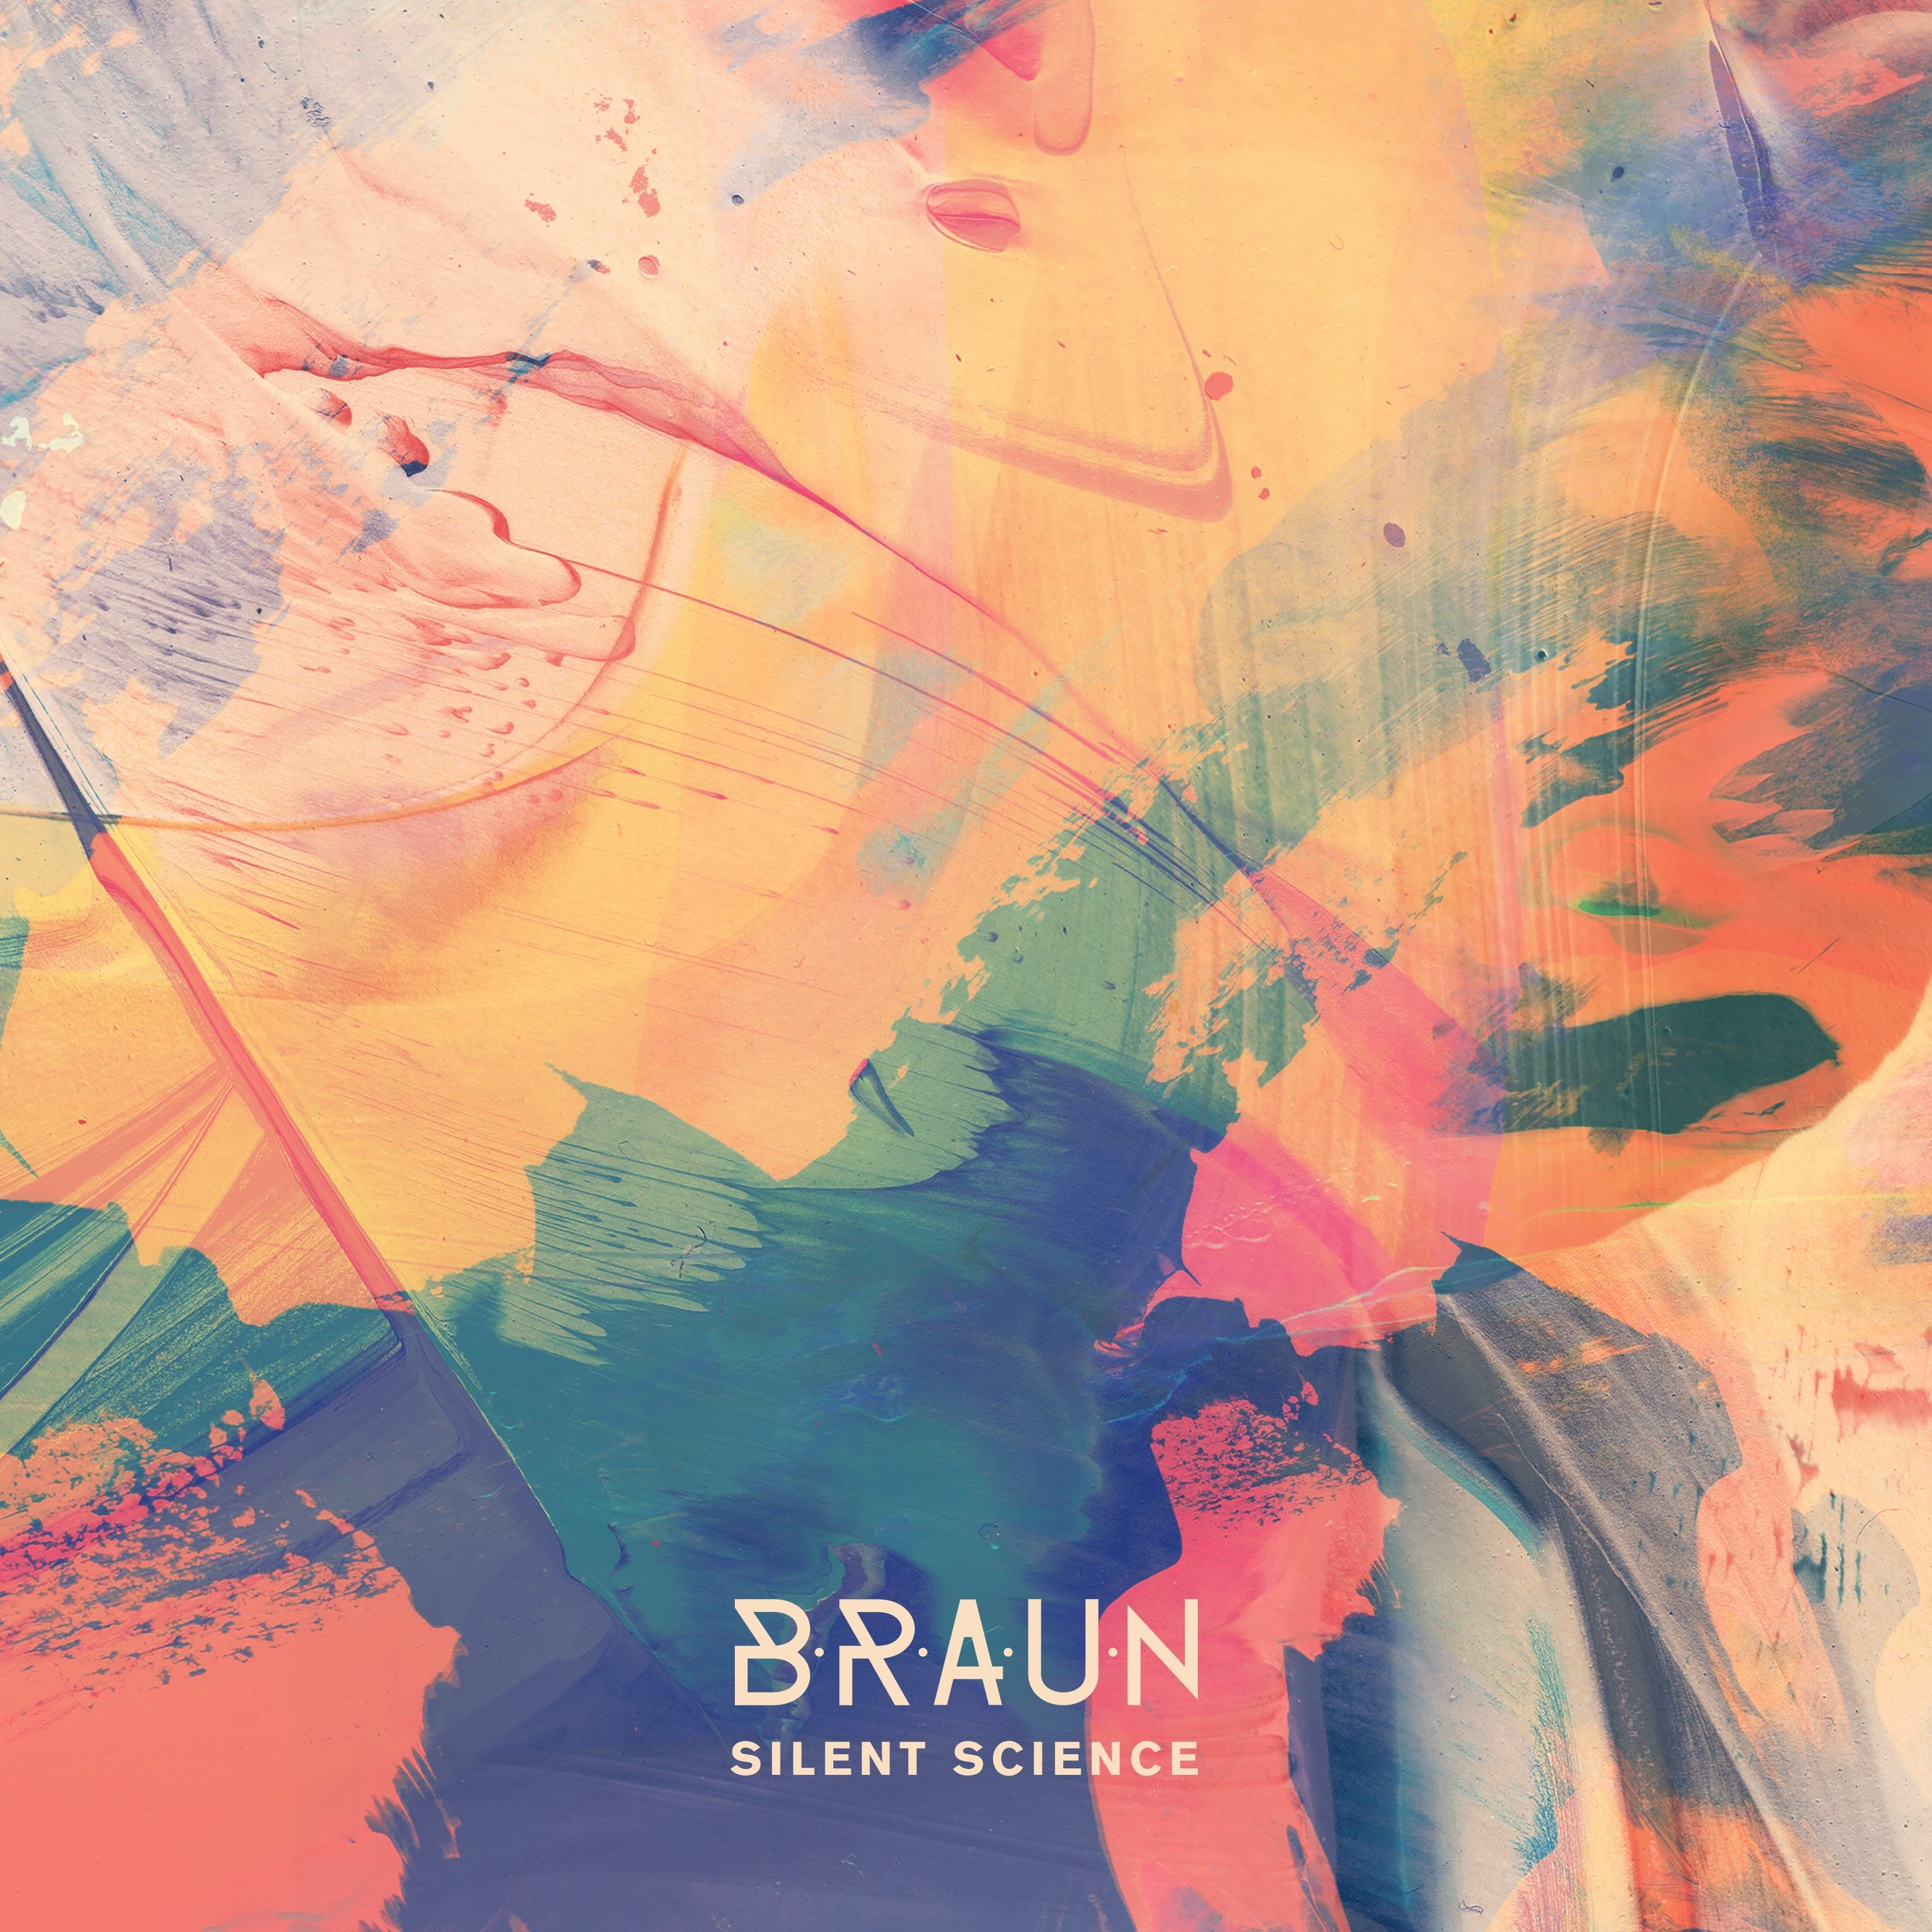 B•R•A•U•N_Silent Science (Album art by Jack Vanzet)_Diving Bell Record Co_Web.jpg